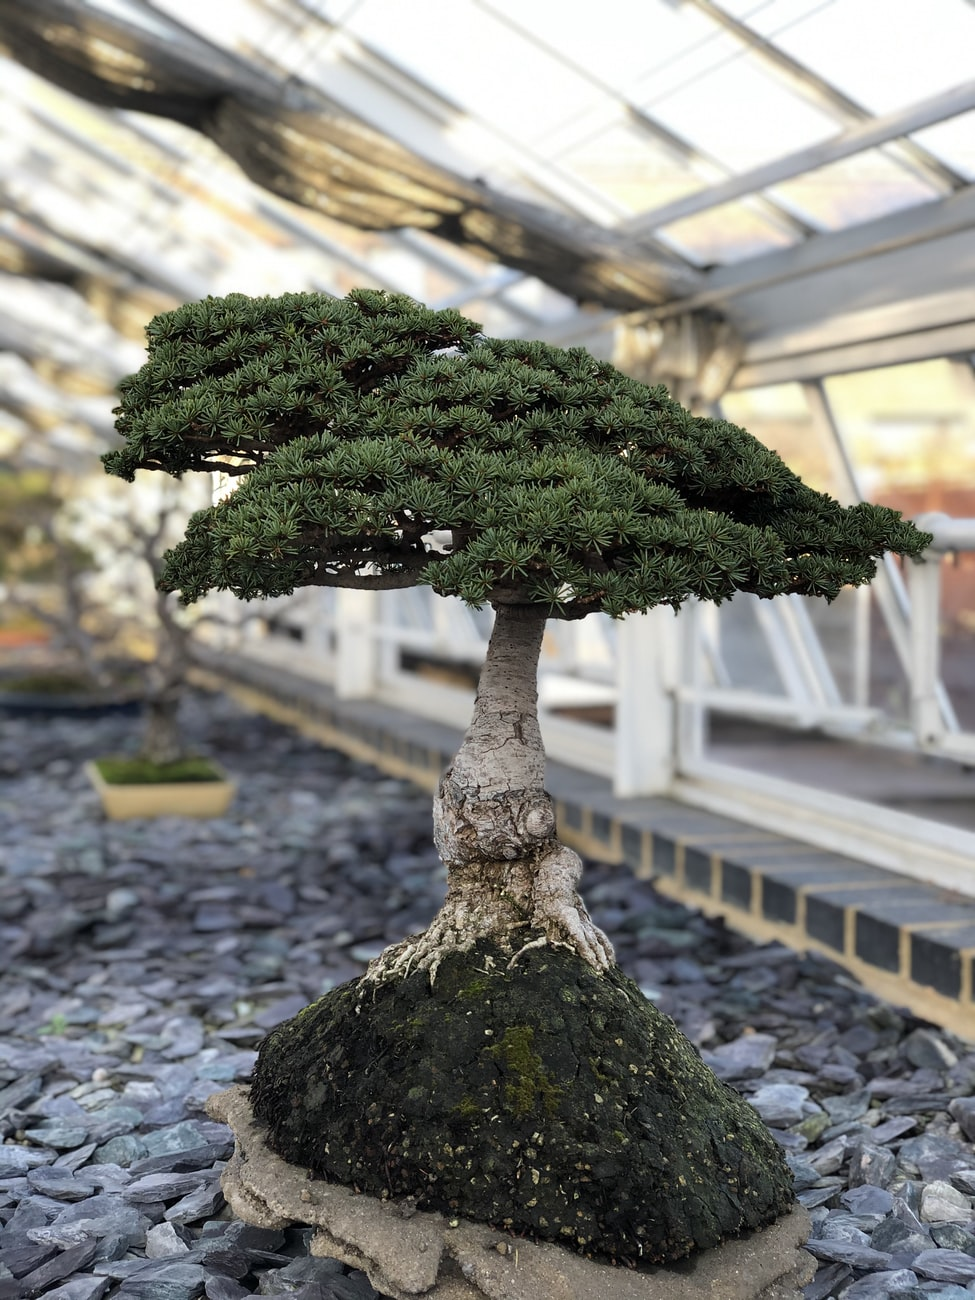 evergreen bonsai tree growing on a rock